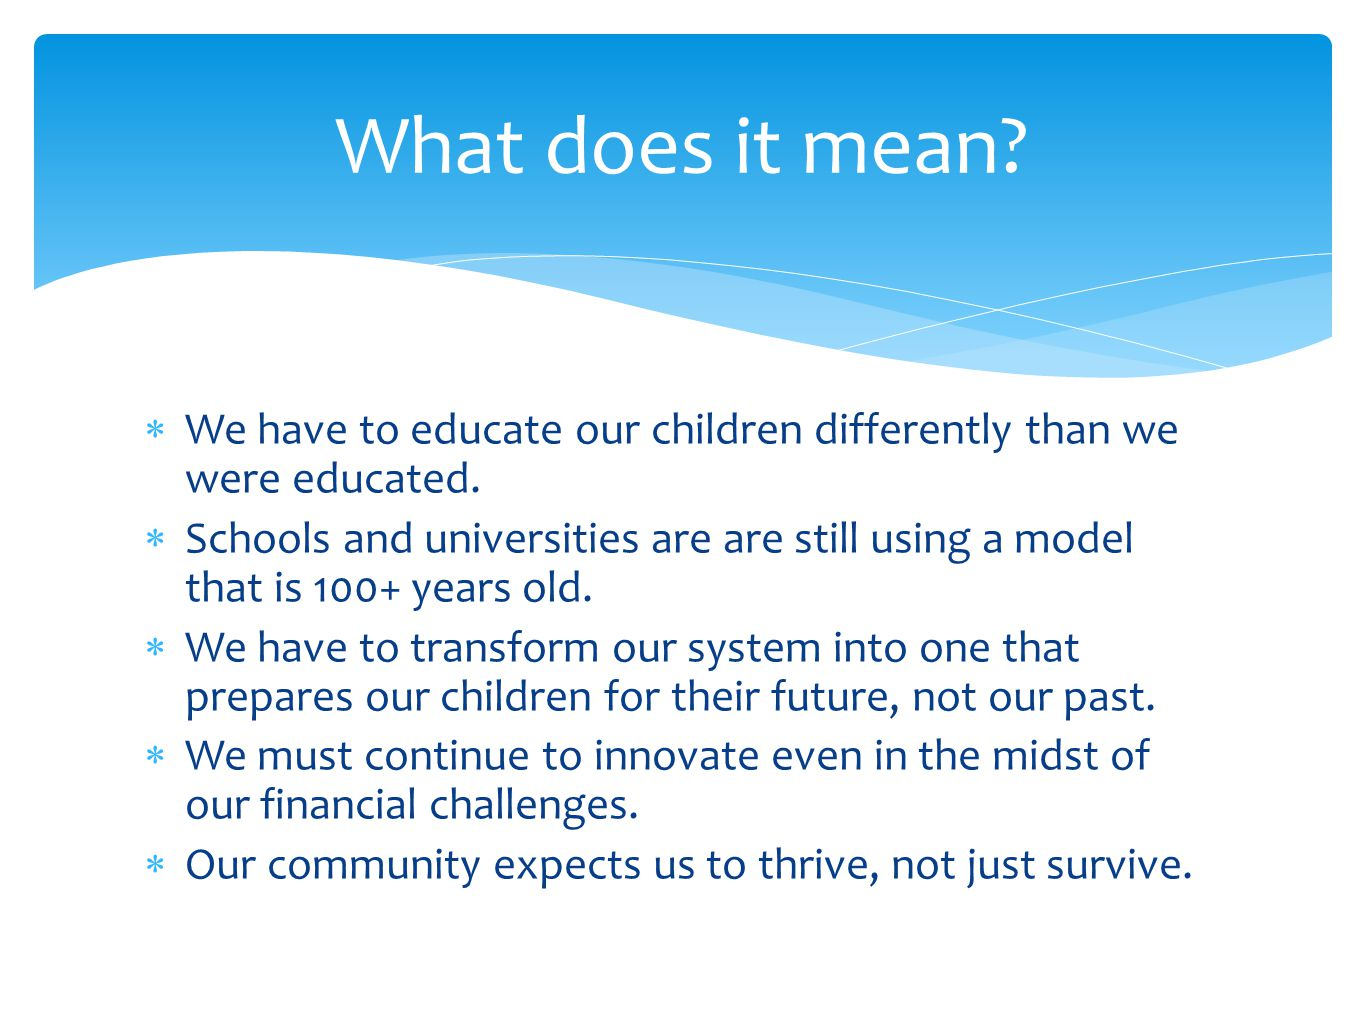  We have to educate our children differently than we were educated.  Schools and universities are are still using a model that is 100+ years old. 